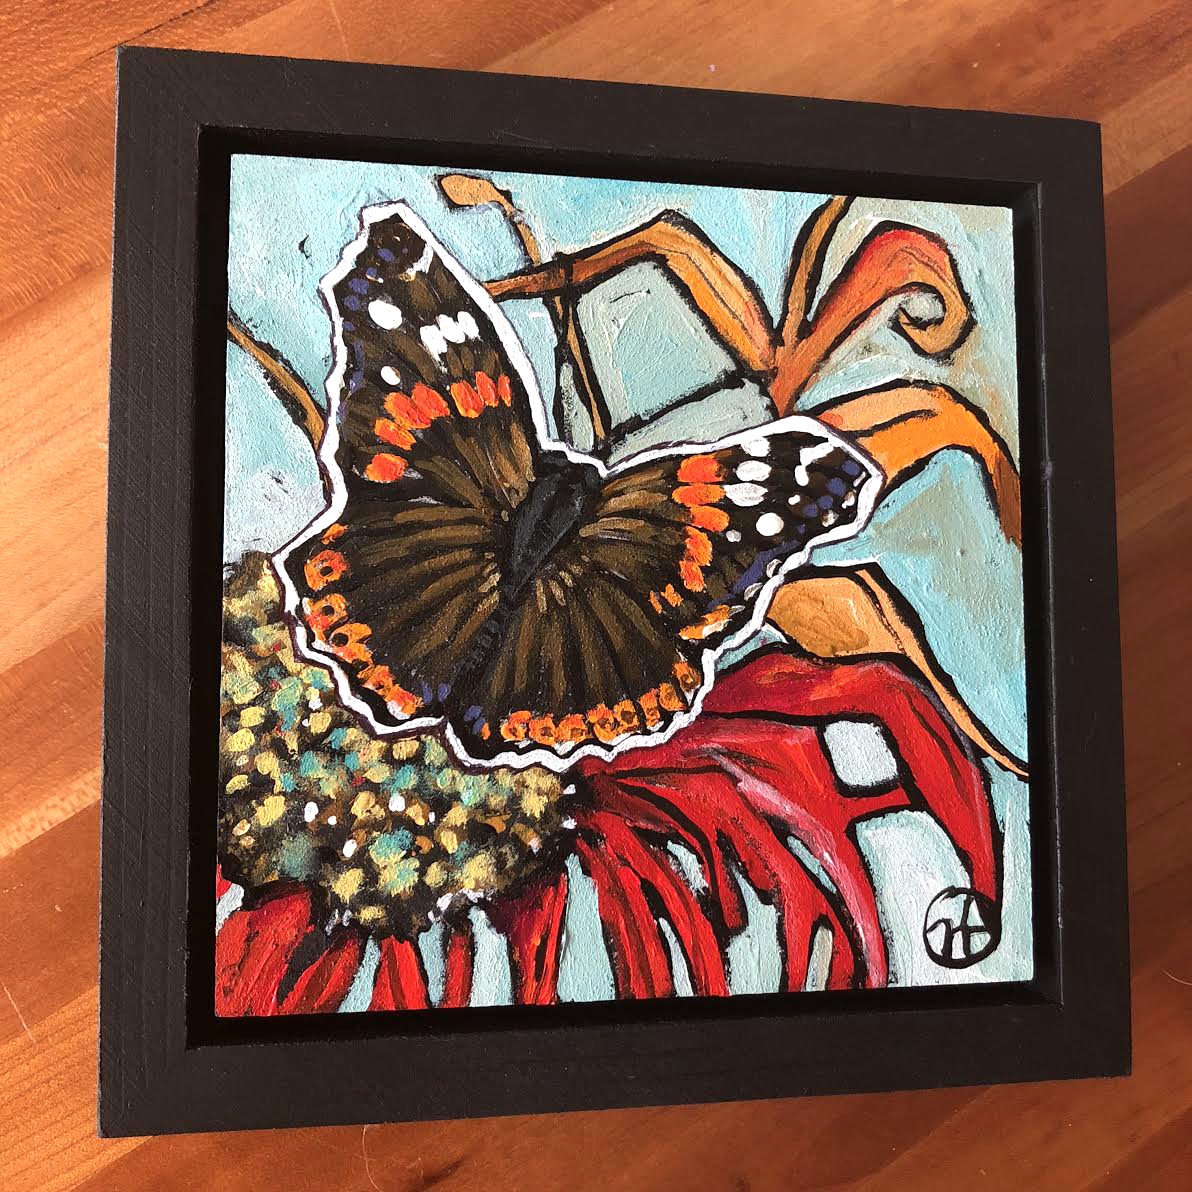 Sold.   Day 13: A Red Admiral based on one of my photos.  acrylic on wood  6.5 x 6.5 inches, 1.5 inch deep wood frame